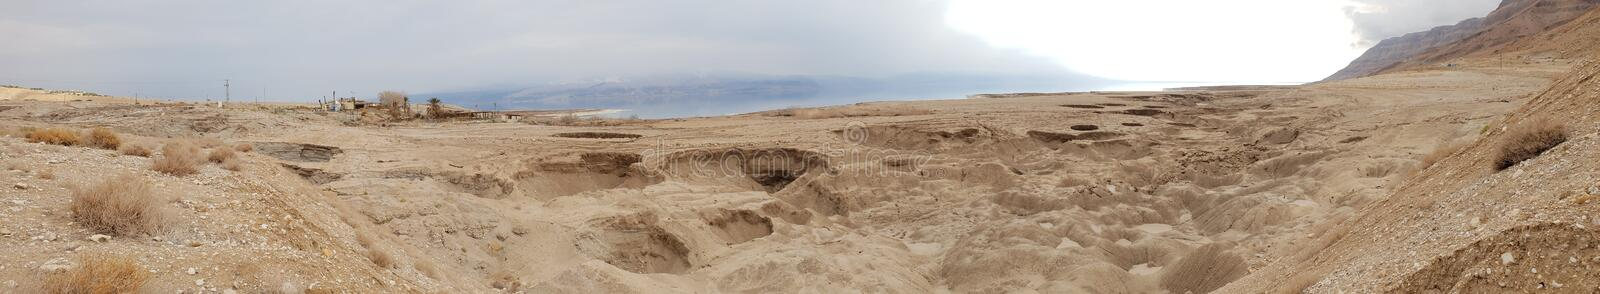 Winter at the lowest place in the world. The Dead sea, the lowest place in the world, -424m below se level , Ein Gedi, the border between israel and the Kingdom royalty free stock photo